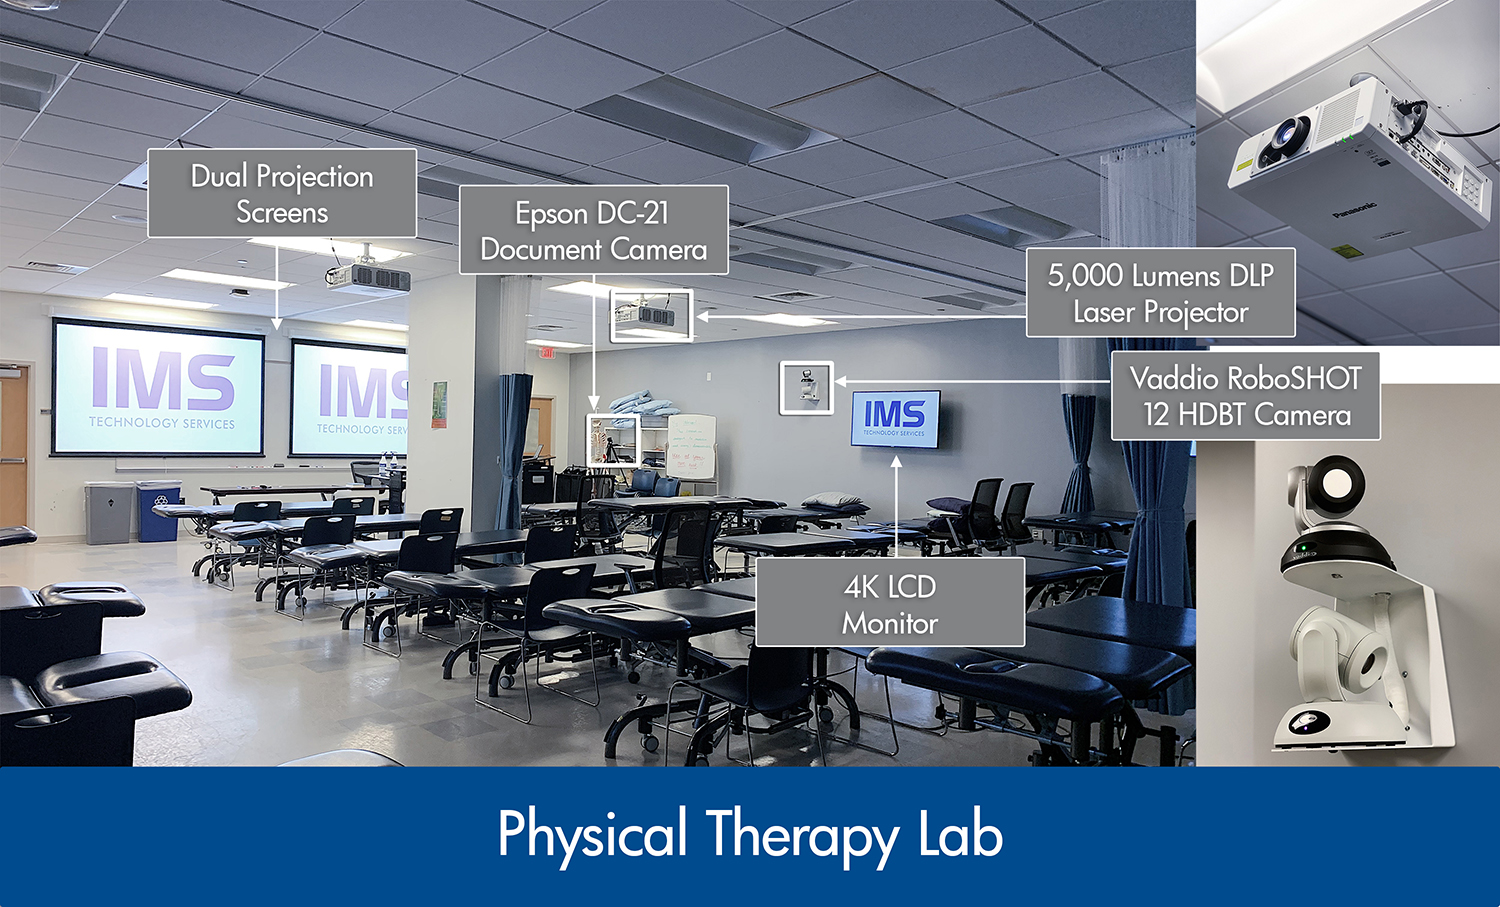 Systems integration in physical therapy lab